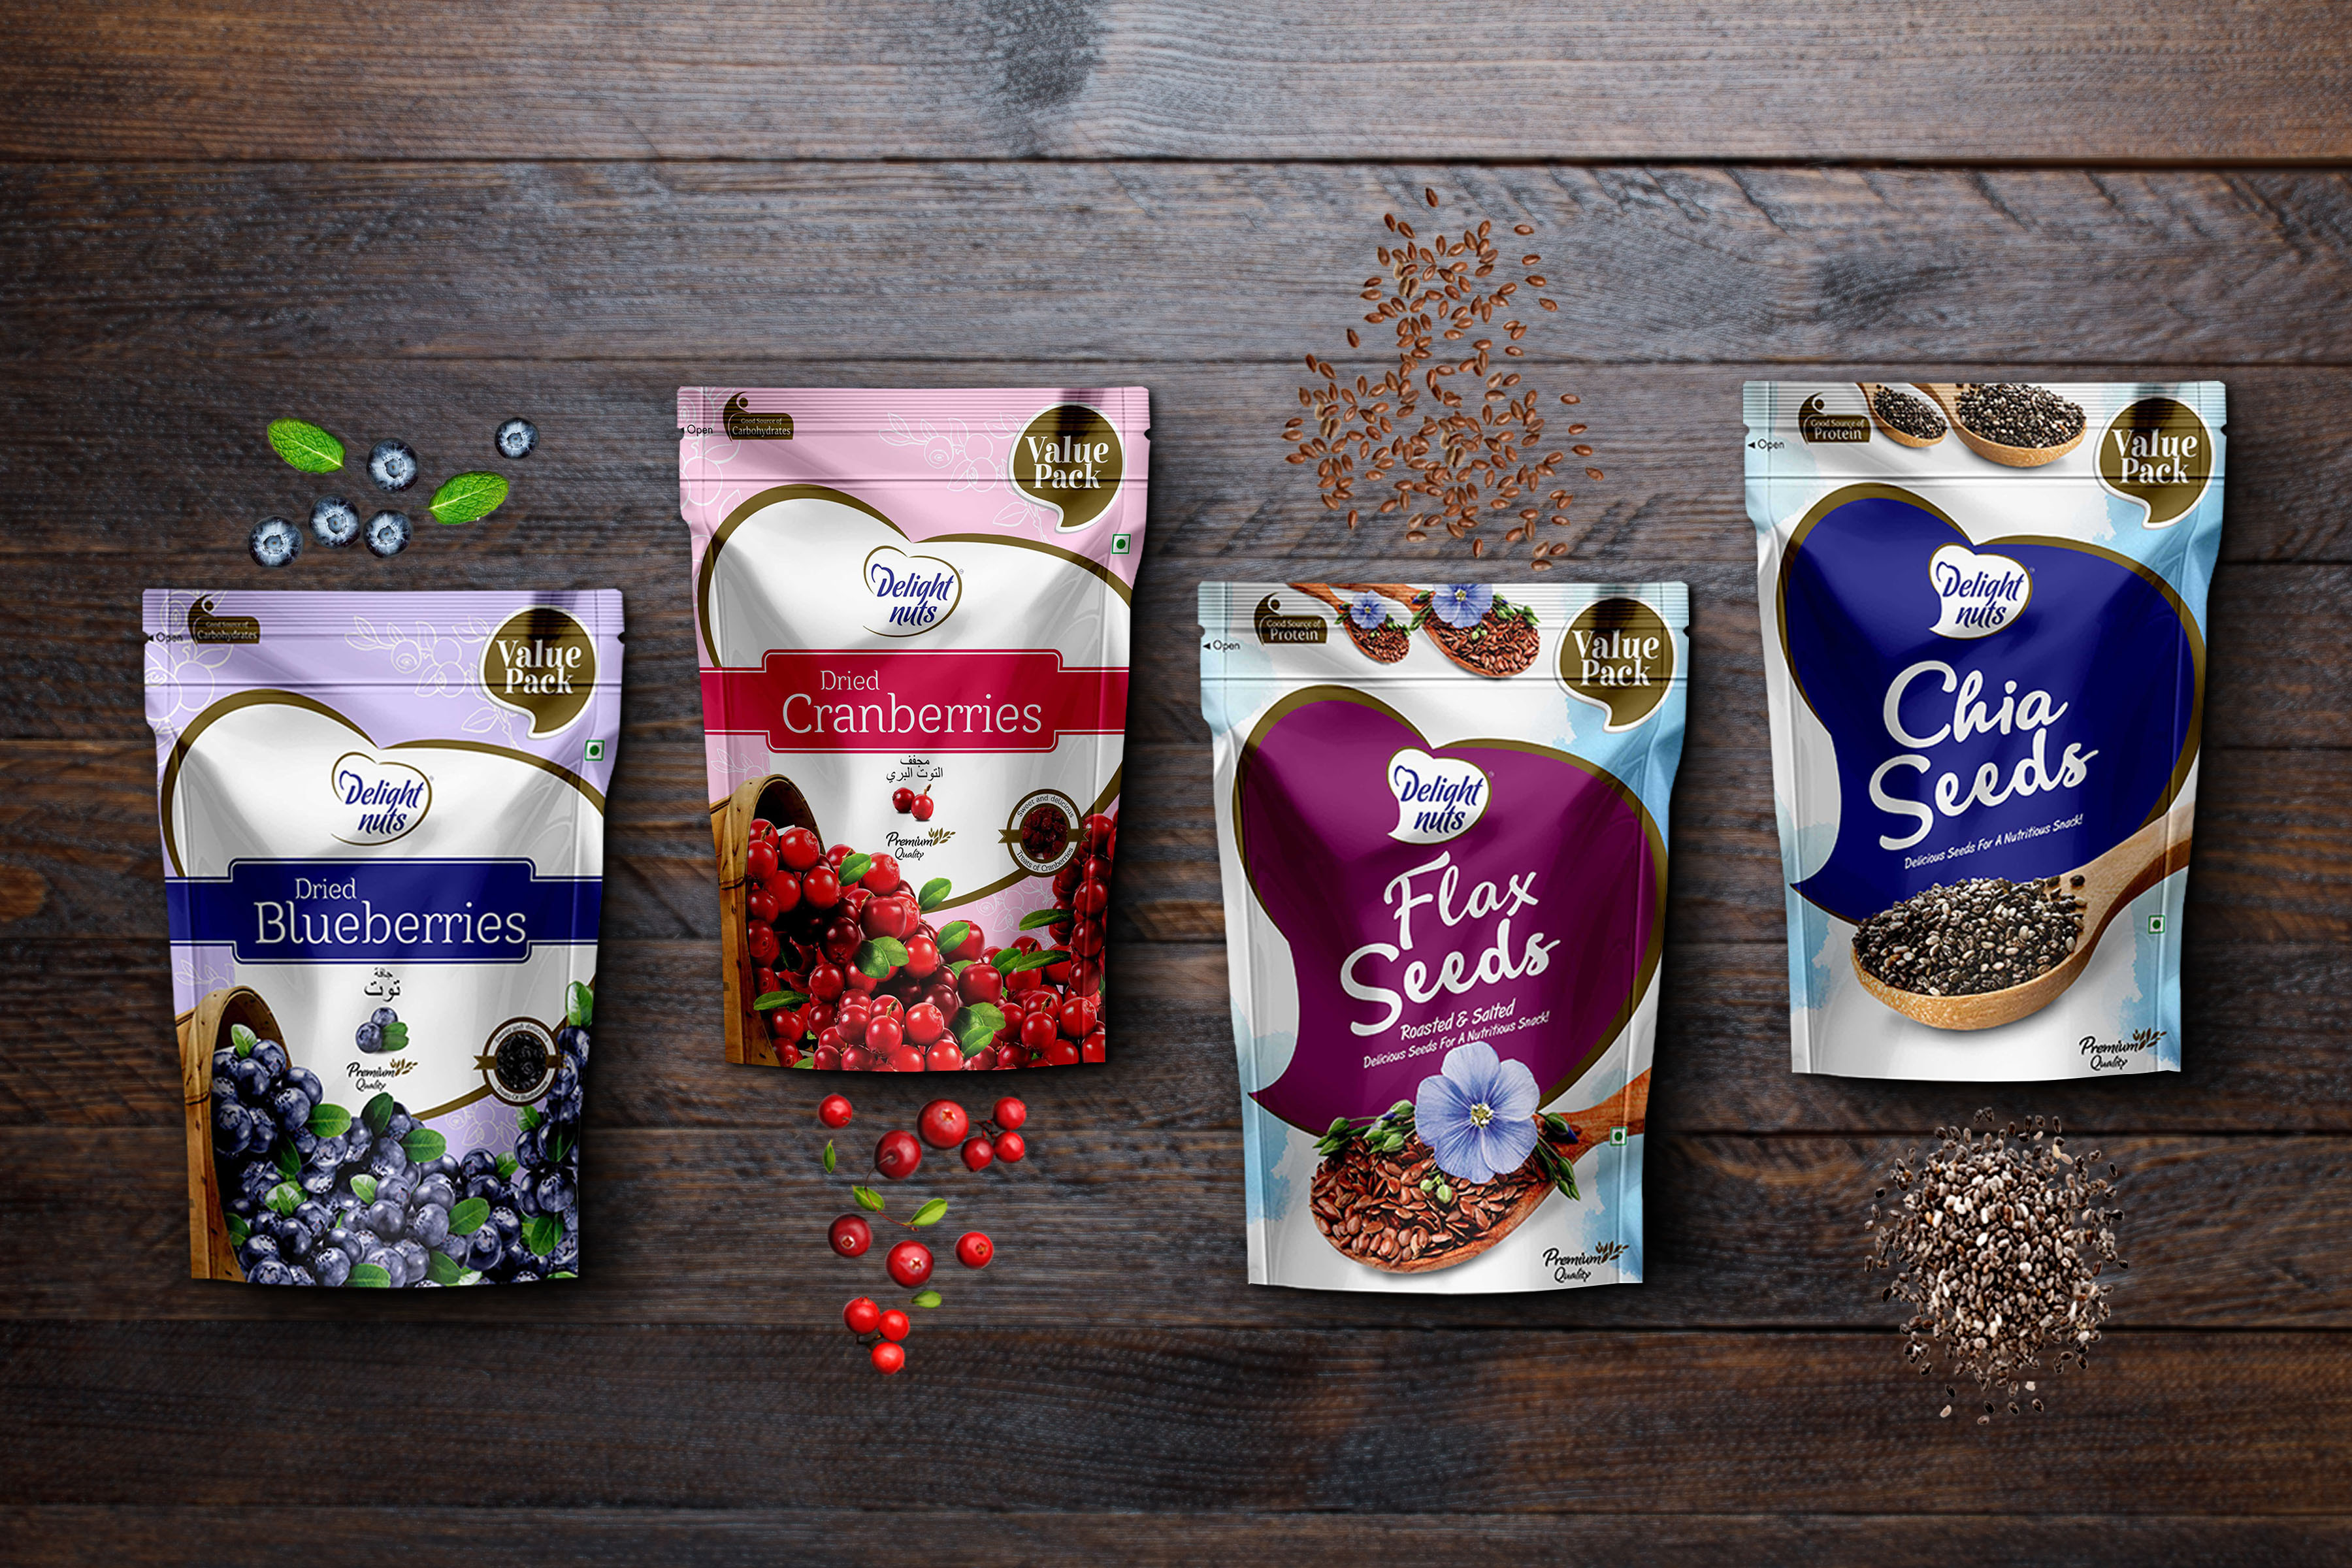 Delight Nuts – All Products